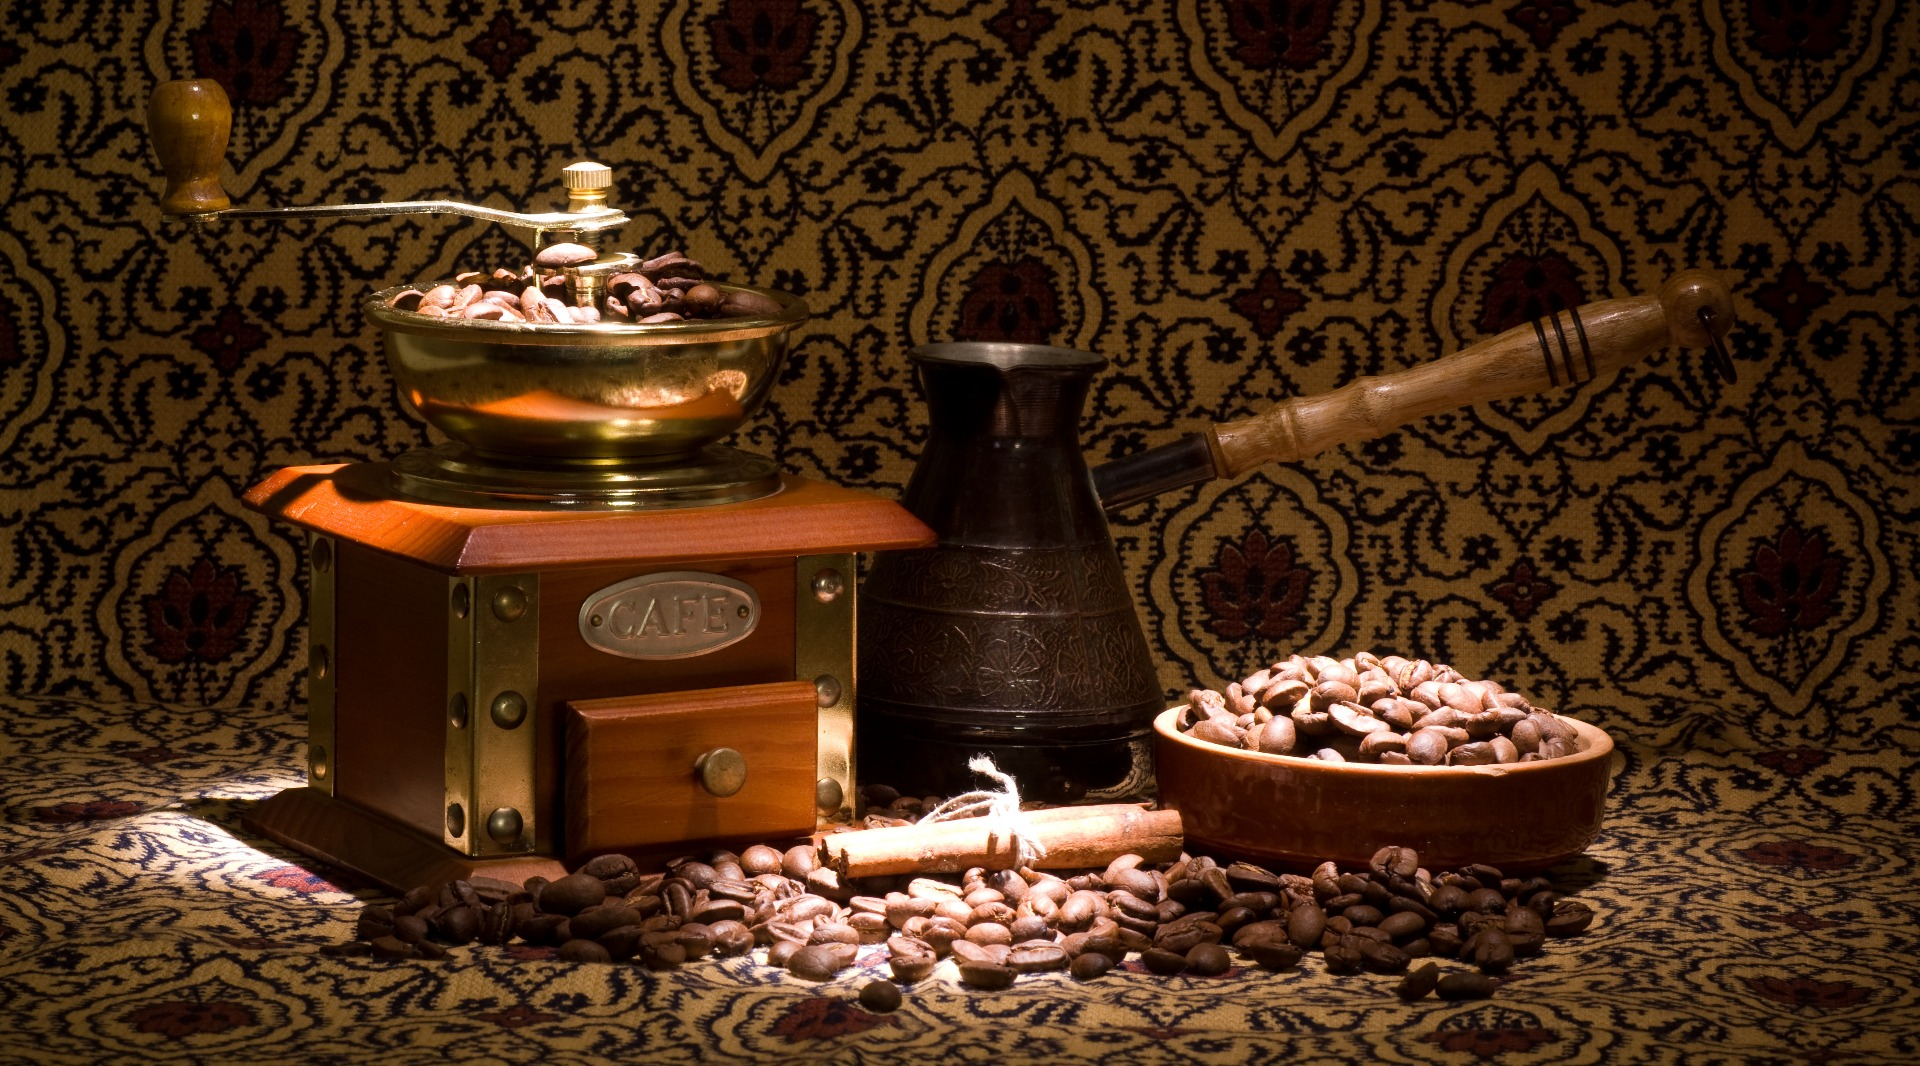 Coffee long known history